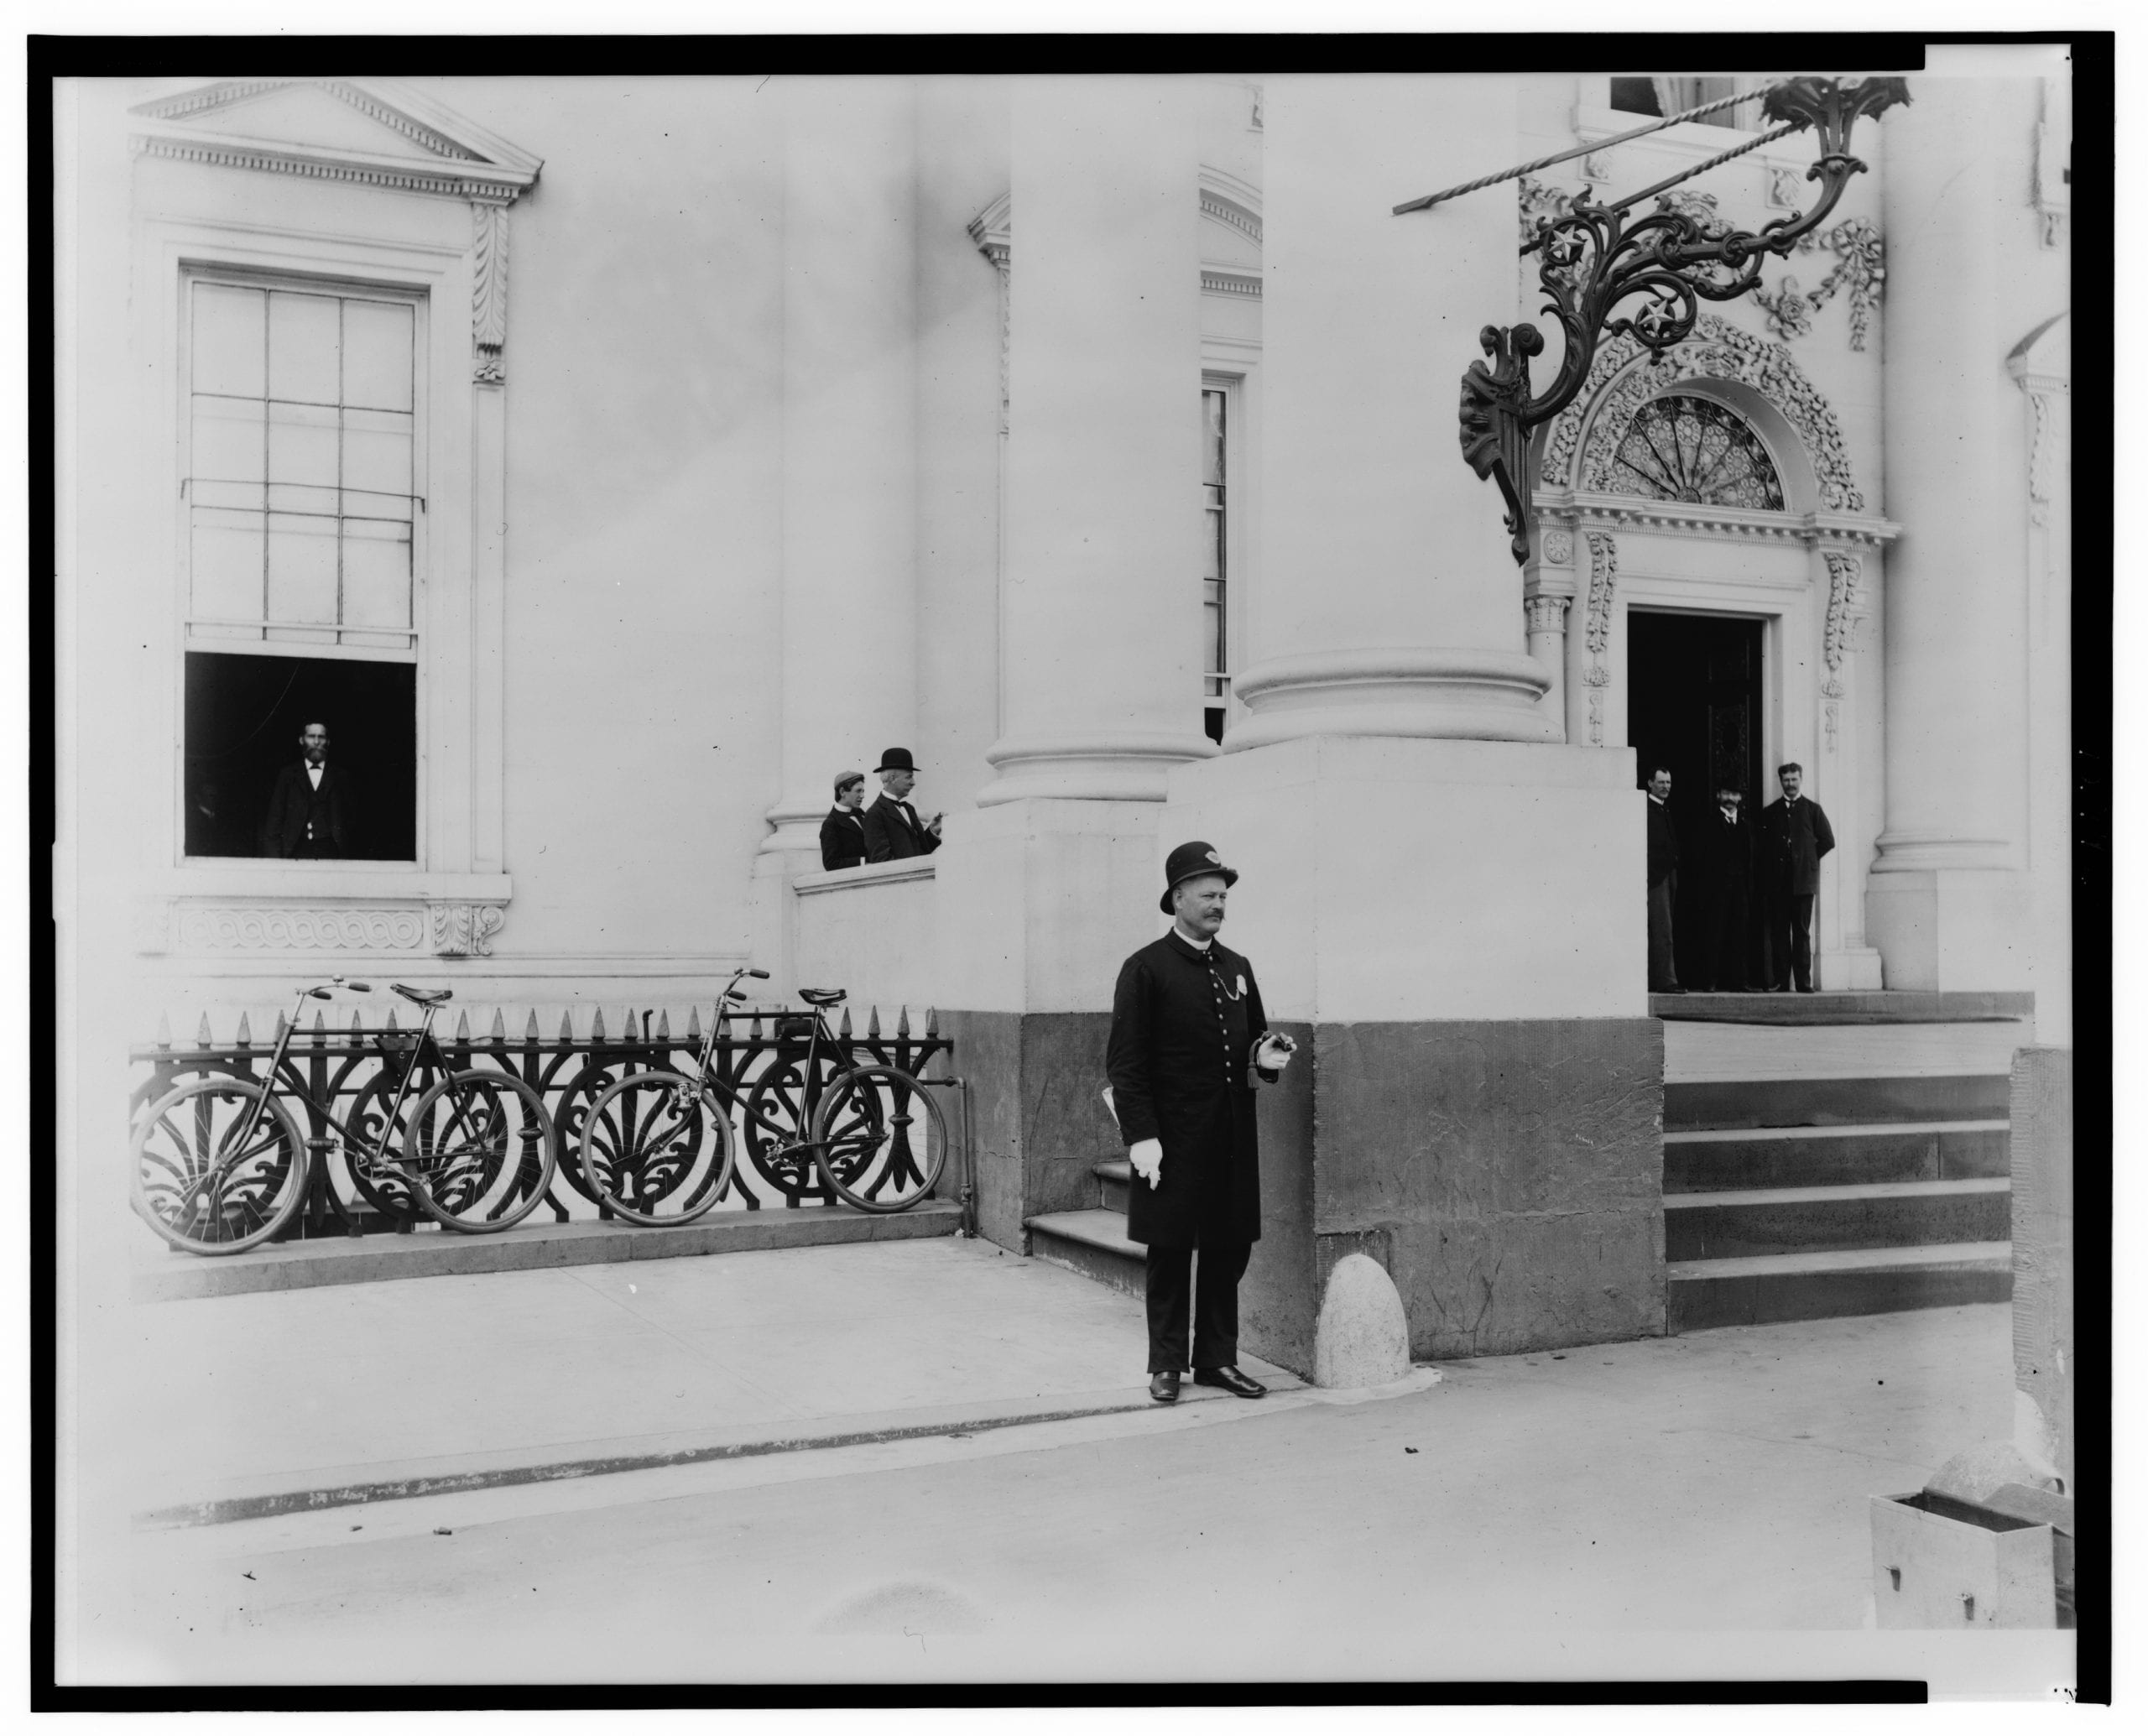 Policeman standing guard at entrance to White House